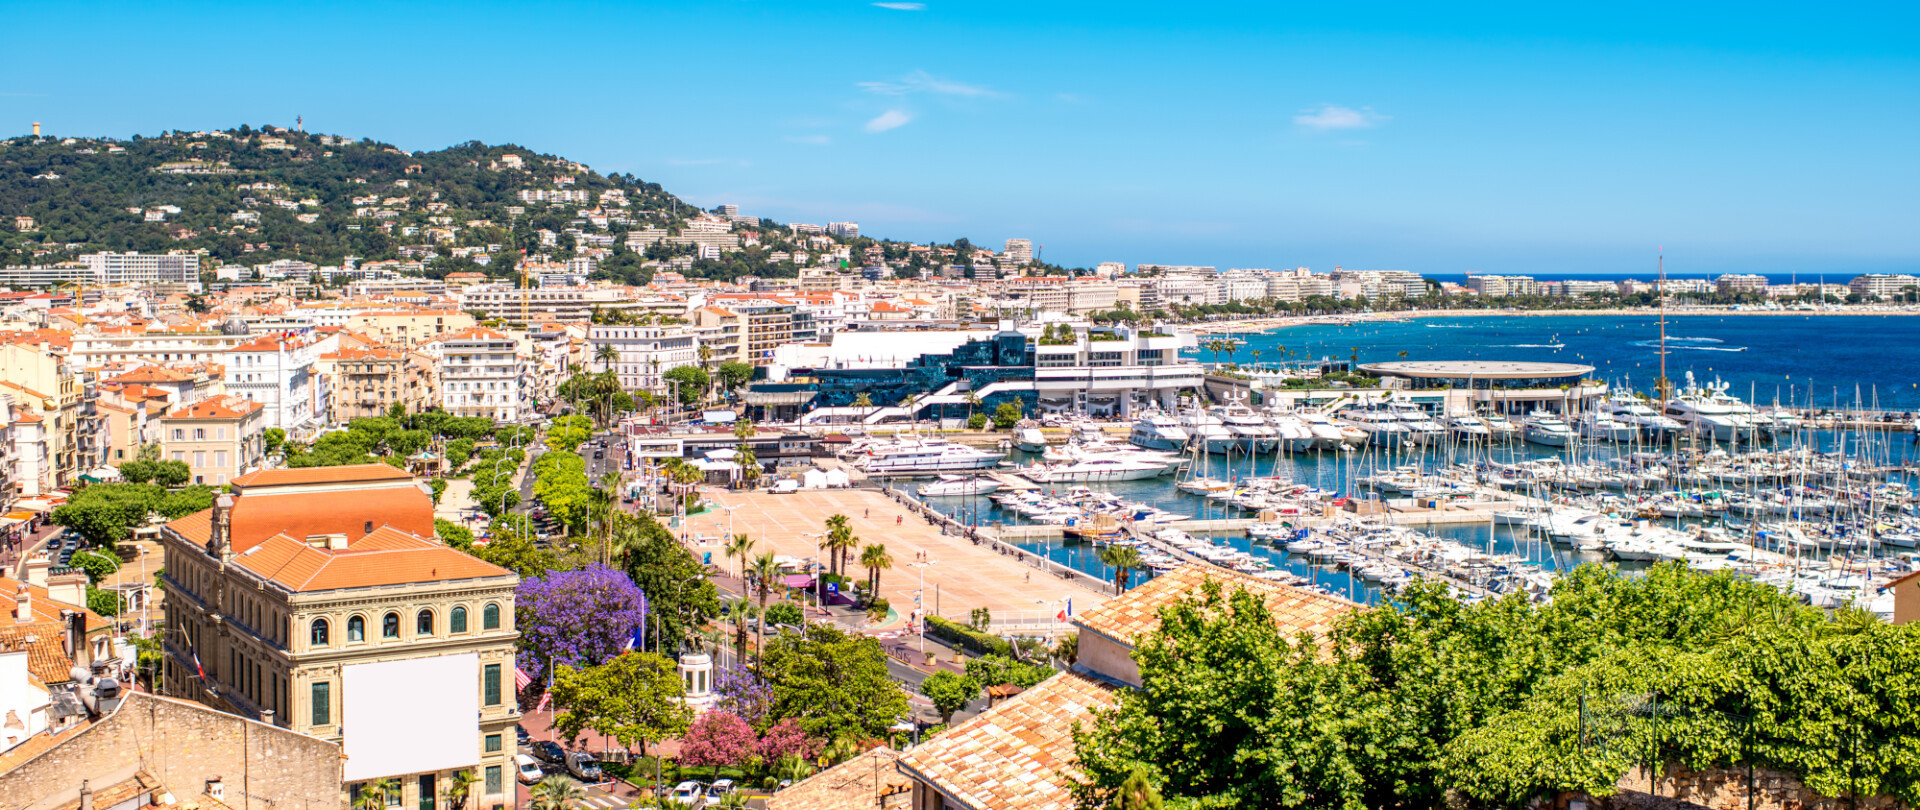 Start the show season with the Cannes Yachting Festival photo 1